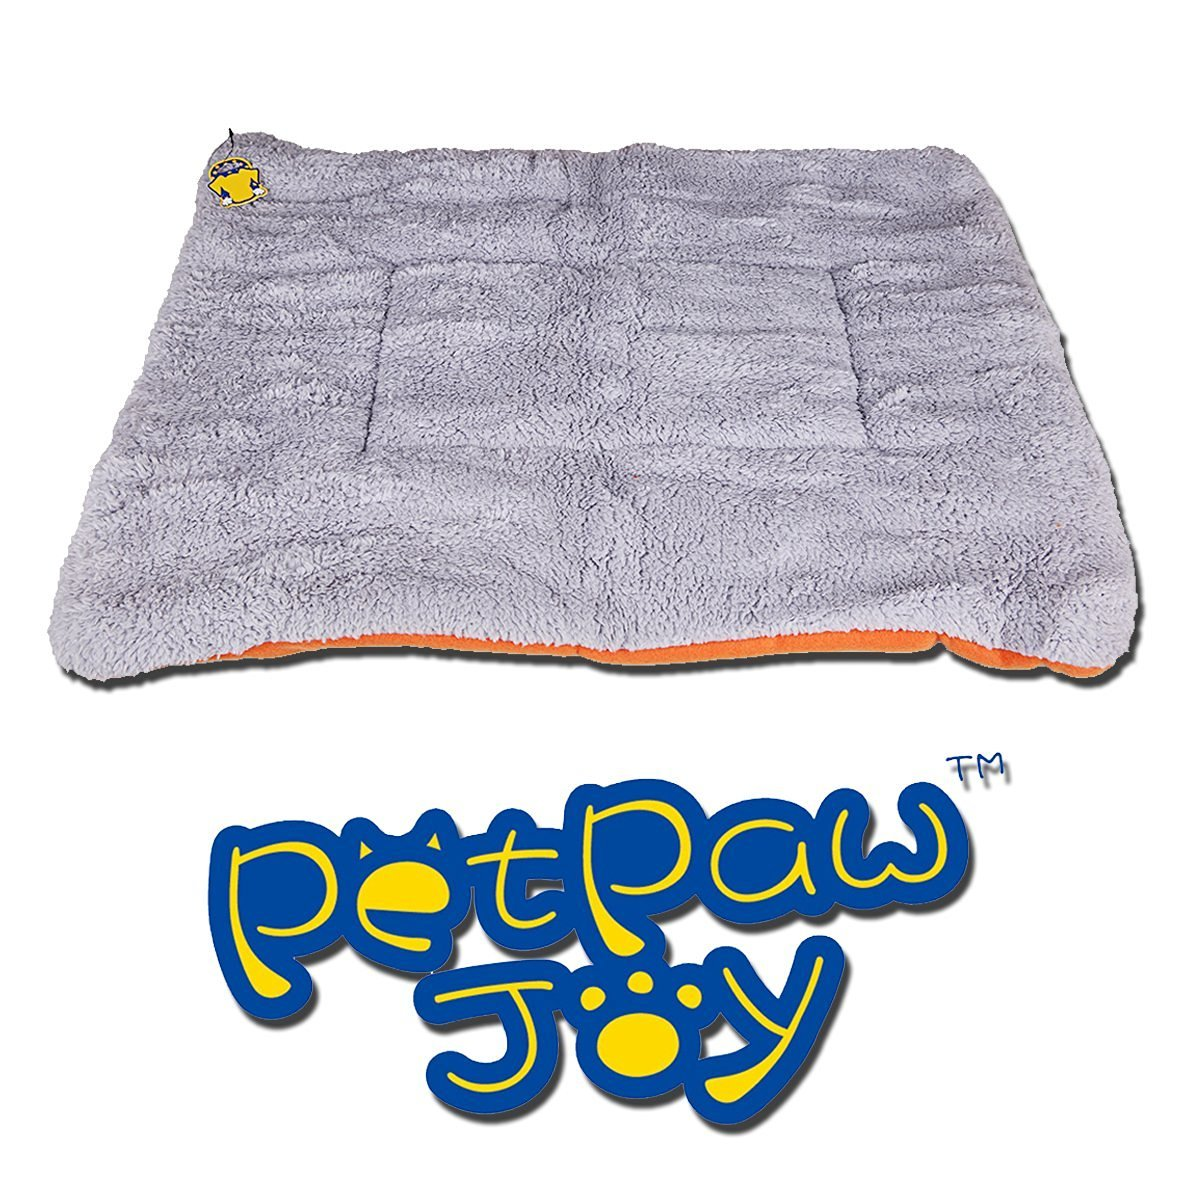 Dogs Blanket, PETPAWJOY Crate Pad Cat Bed Dog Crate Cushions Pad Washable Filling Pads Soft Furry Pet Bed Mat 33x31,30x26,26x23 inch